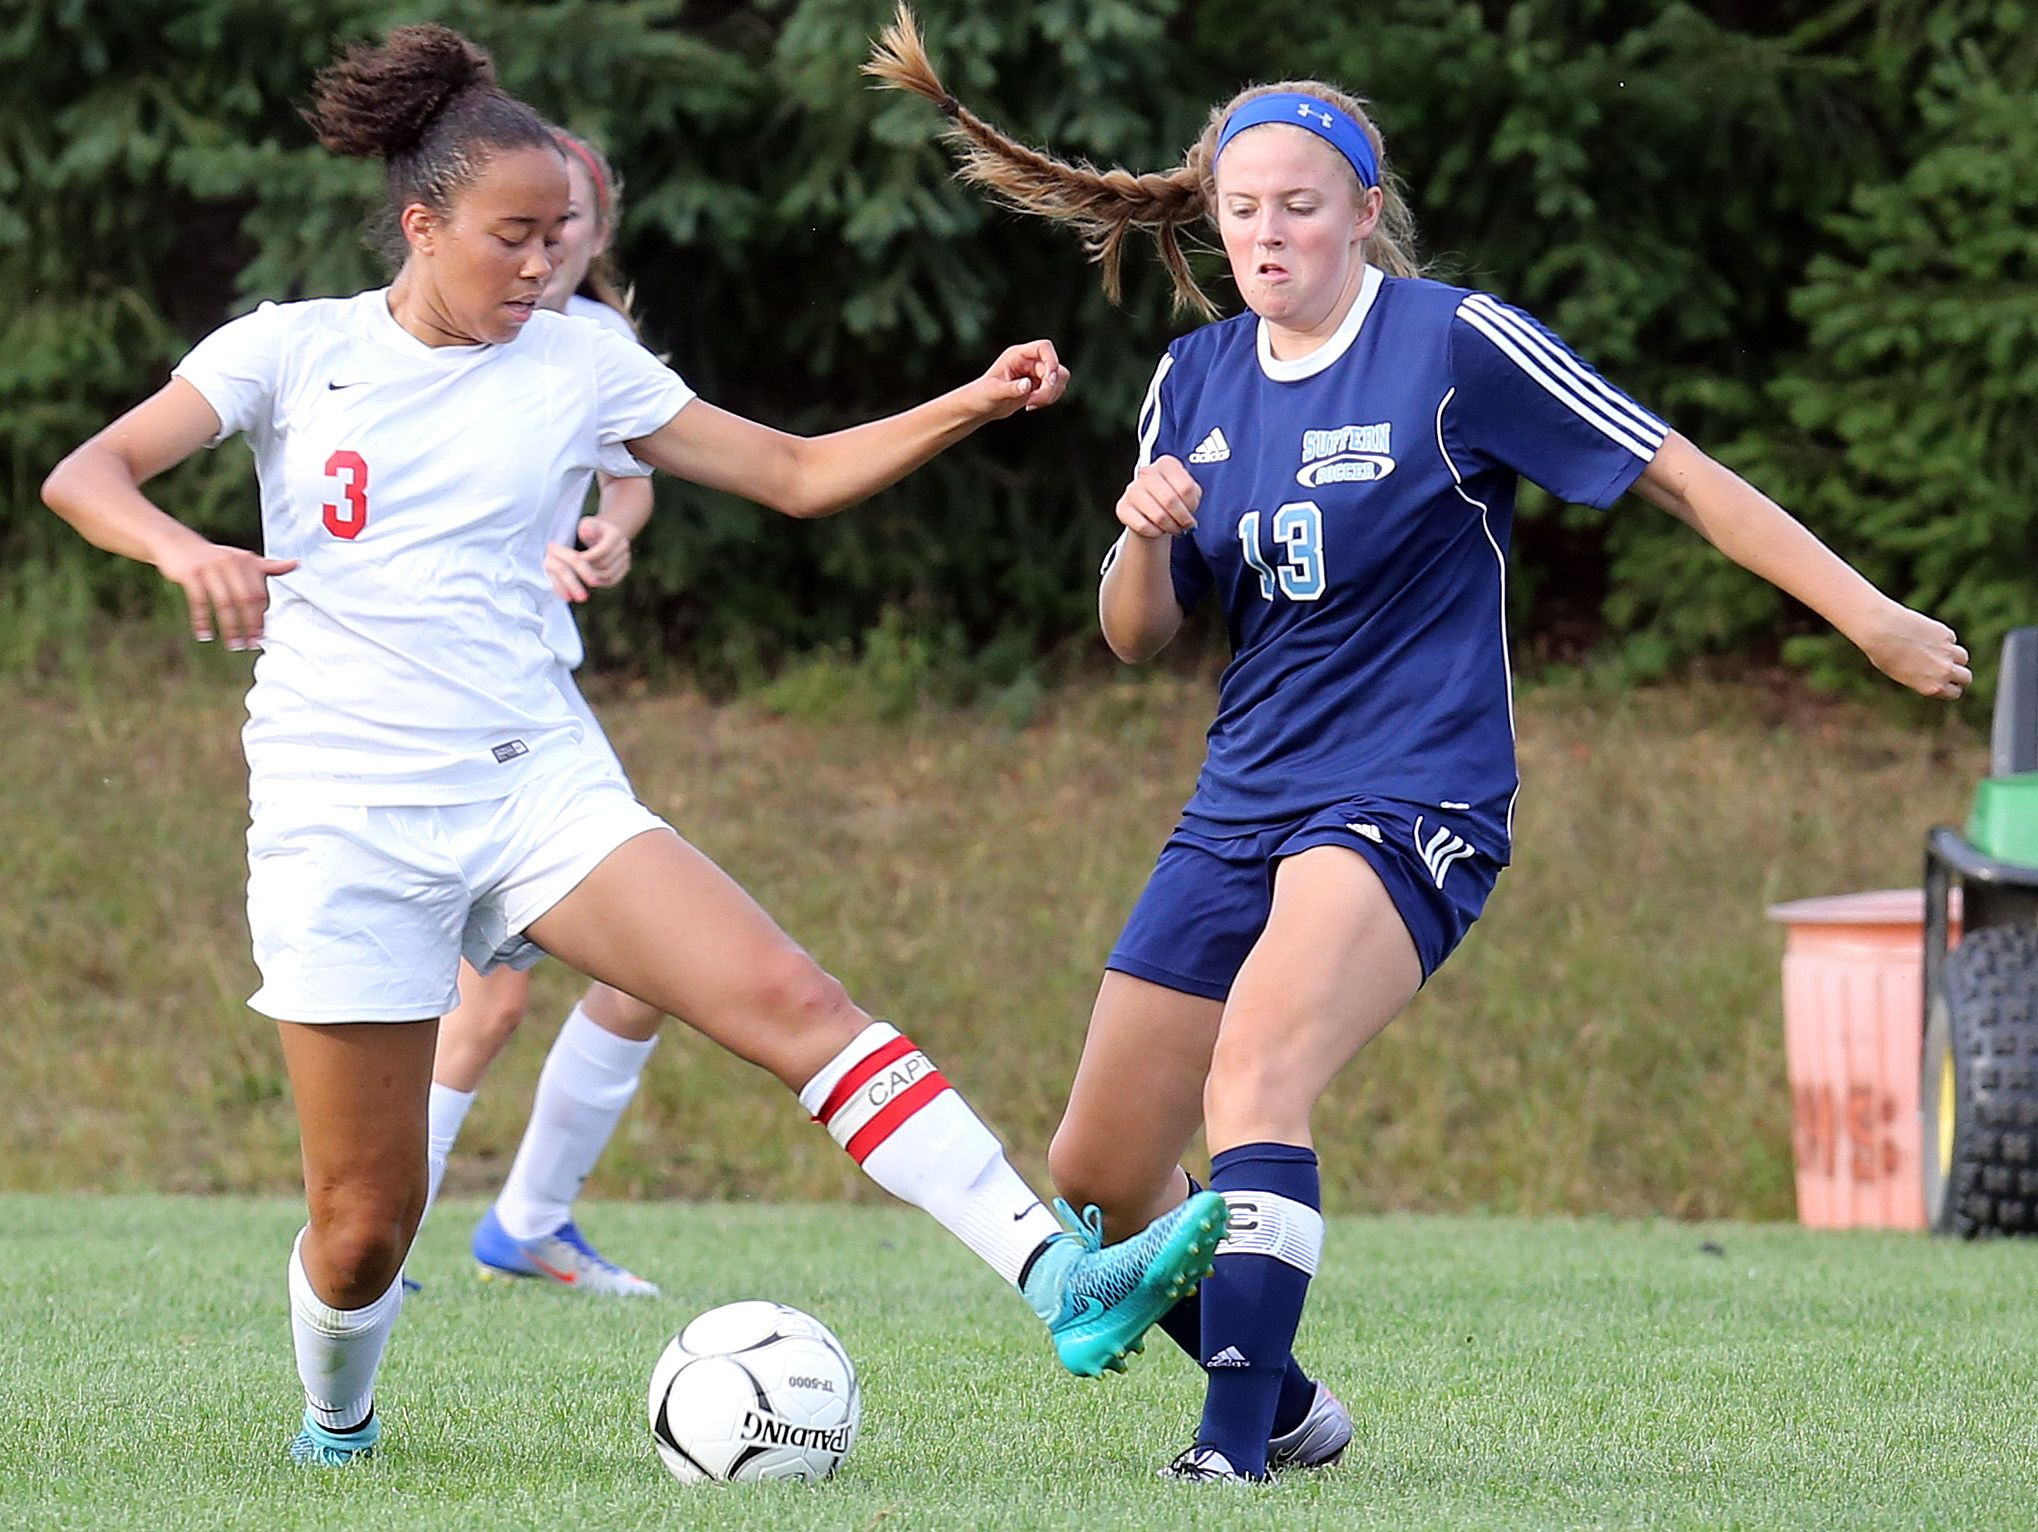 Suffern plays North Rockland during girls soccer game at North Rockland High School in Theills on Sept. 21, 2016.